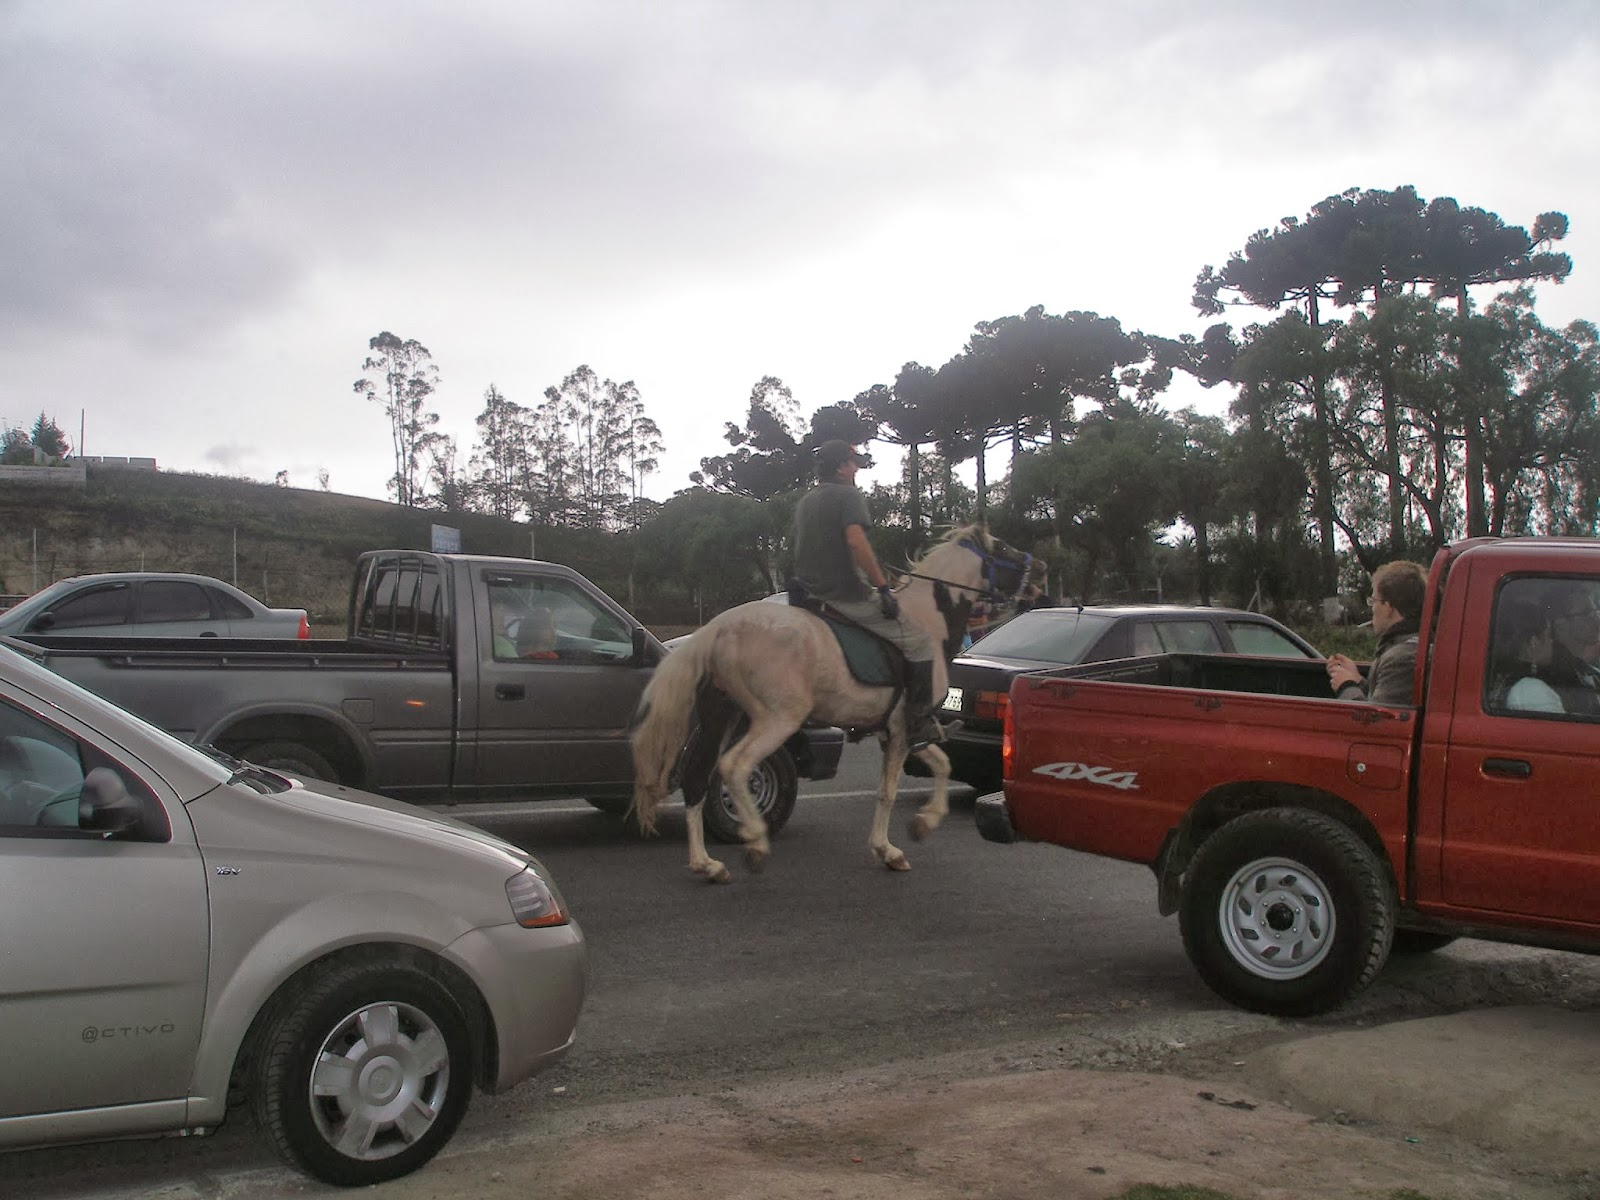 horseback rider among traffic